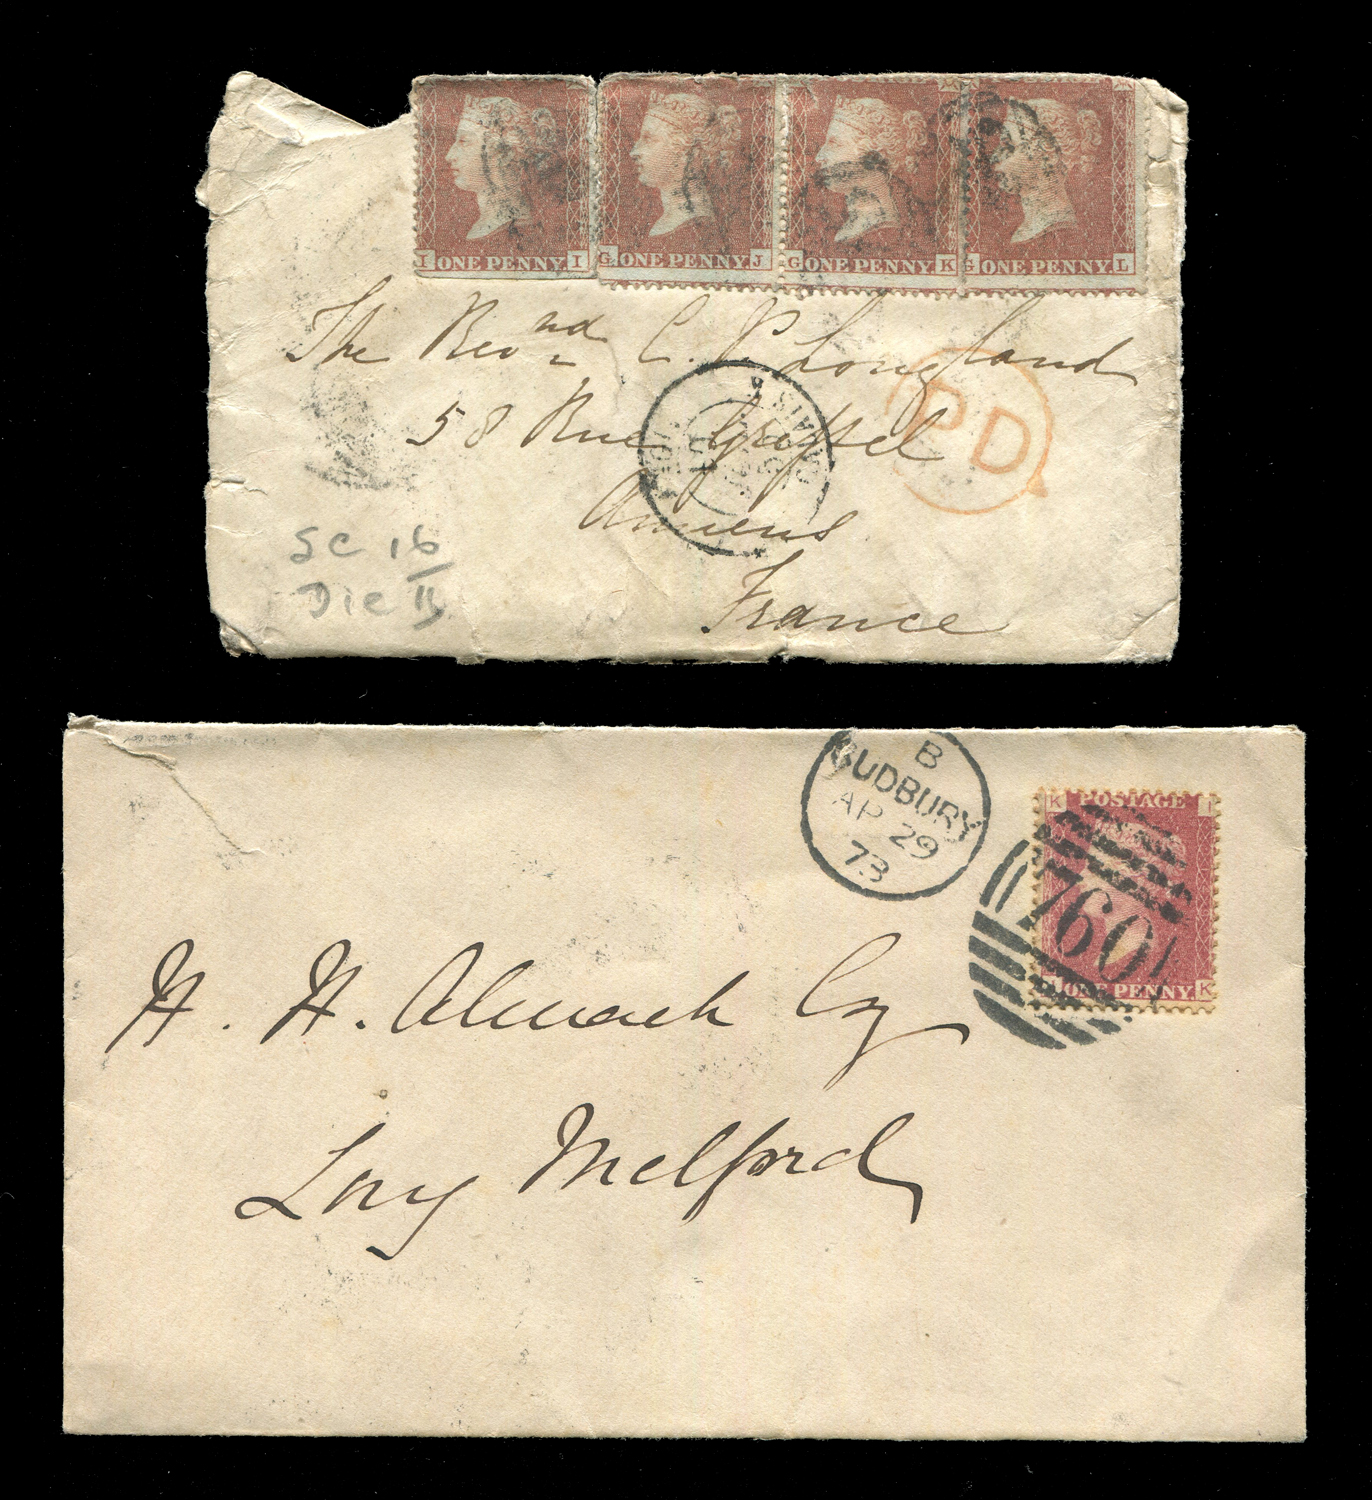 Lot 3056 - A collection of world stamps in two albums with Australia and Spain, Great Britain 1d red covers,